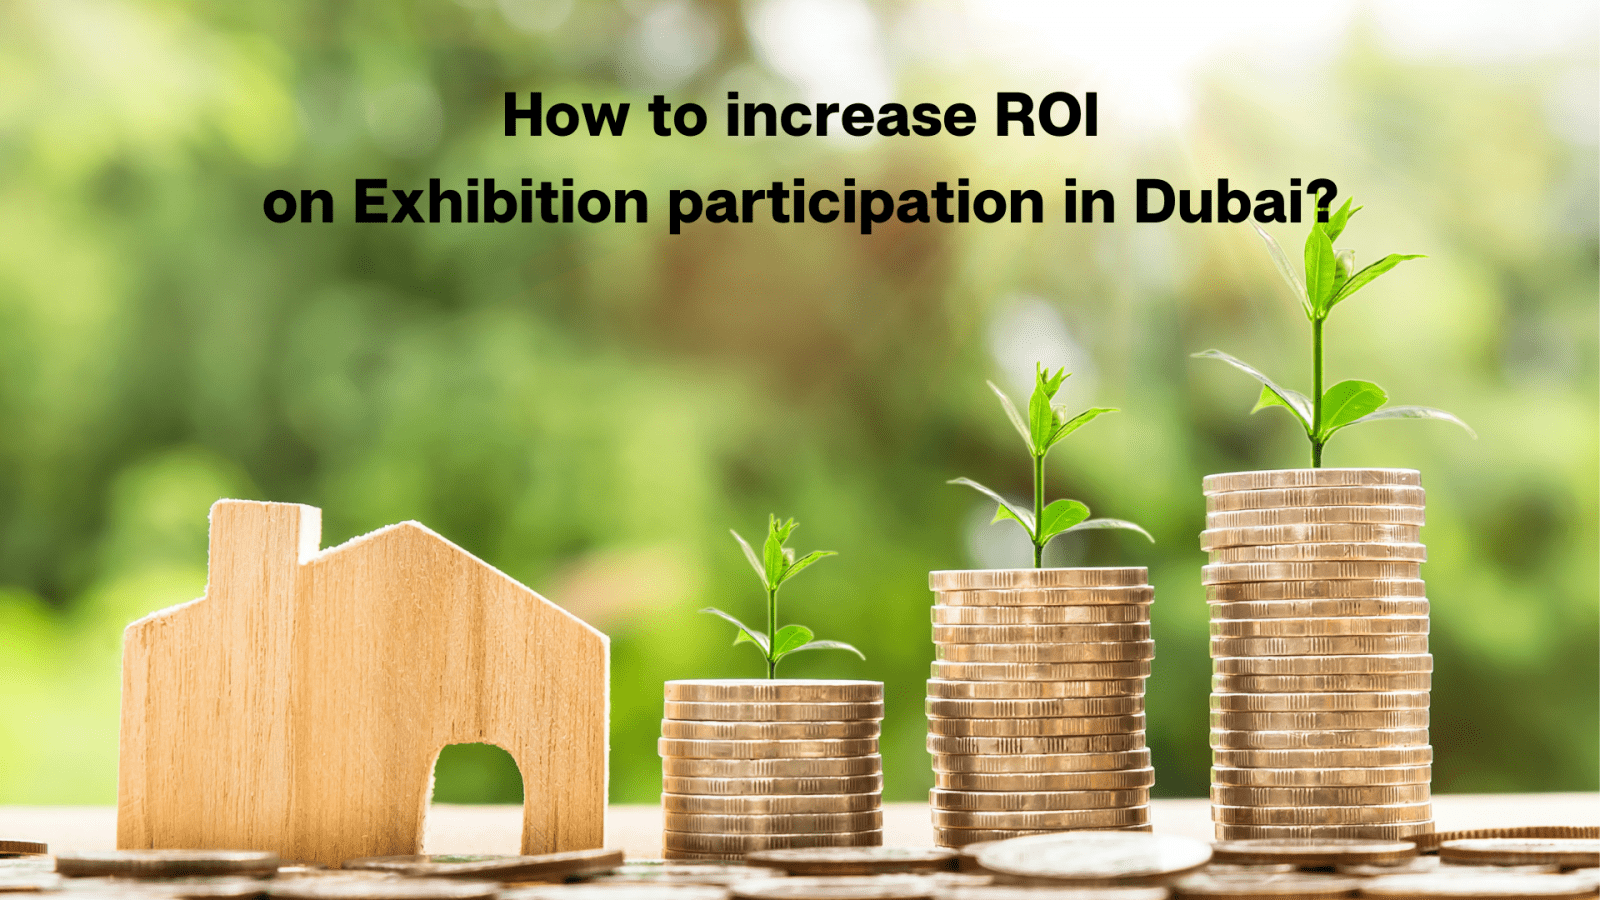 ROI on Exhibition participation